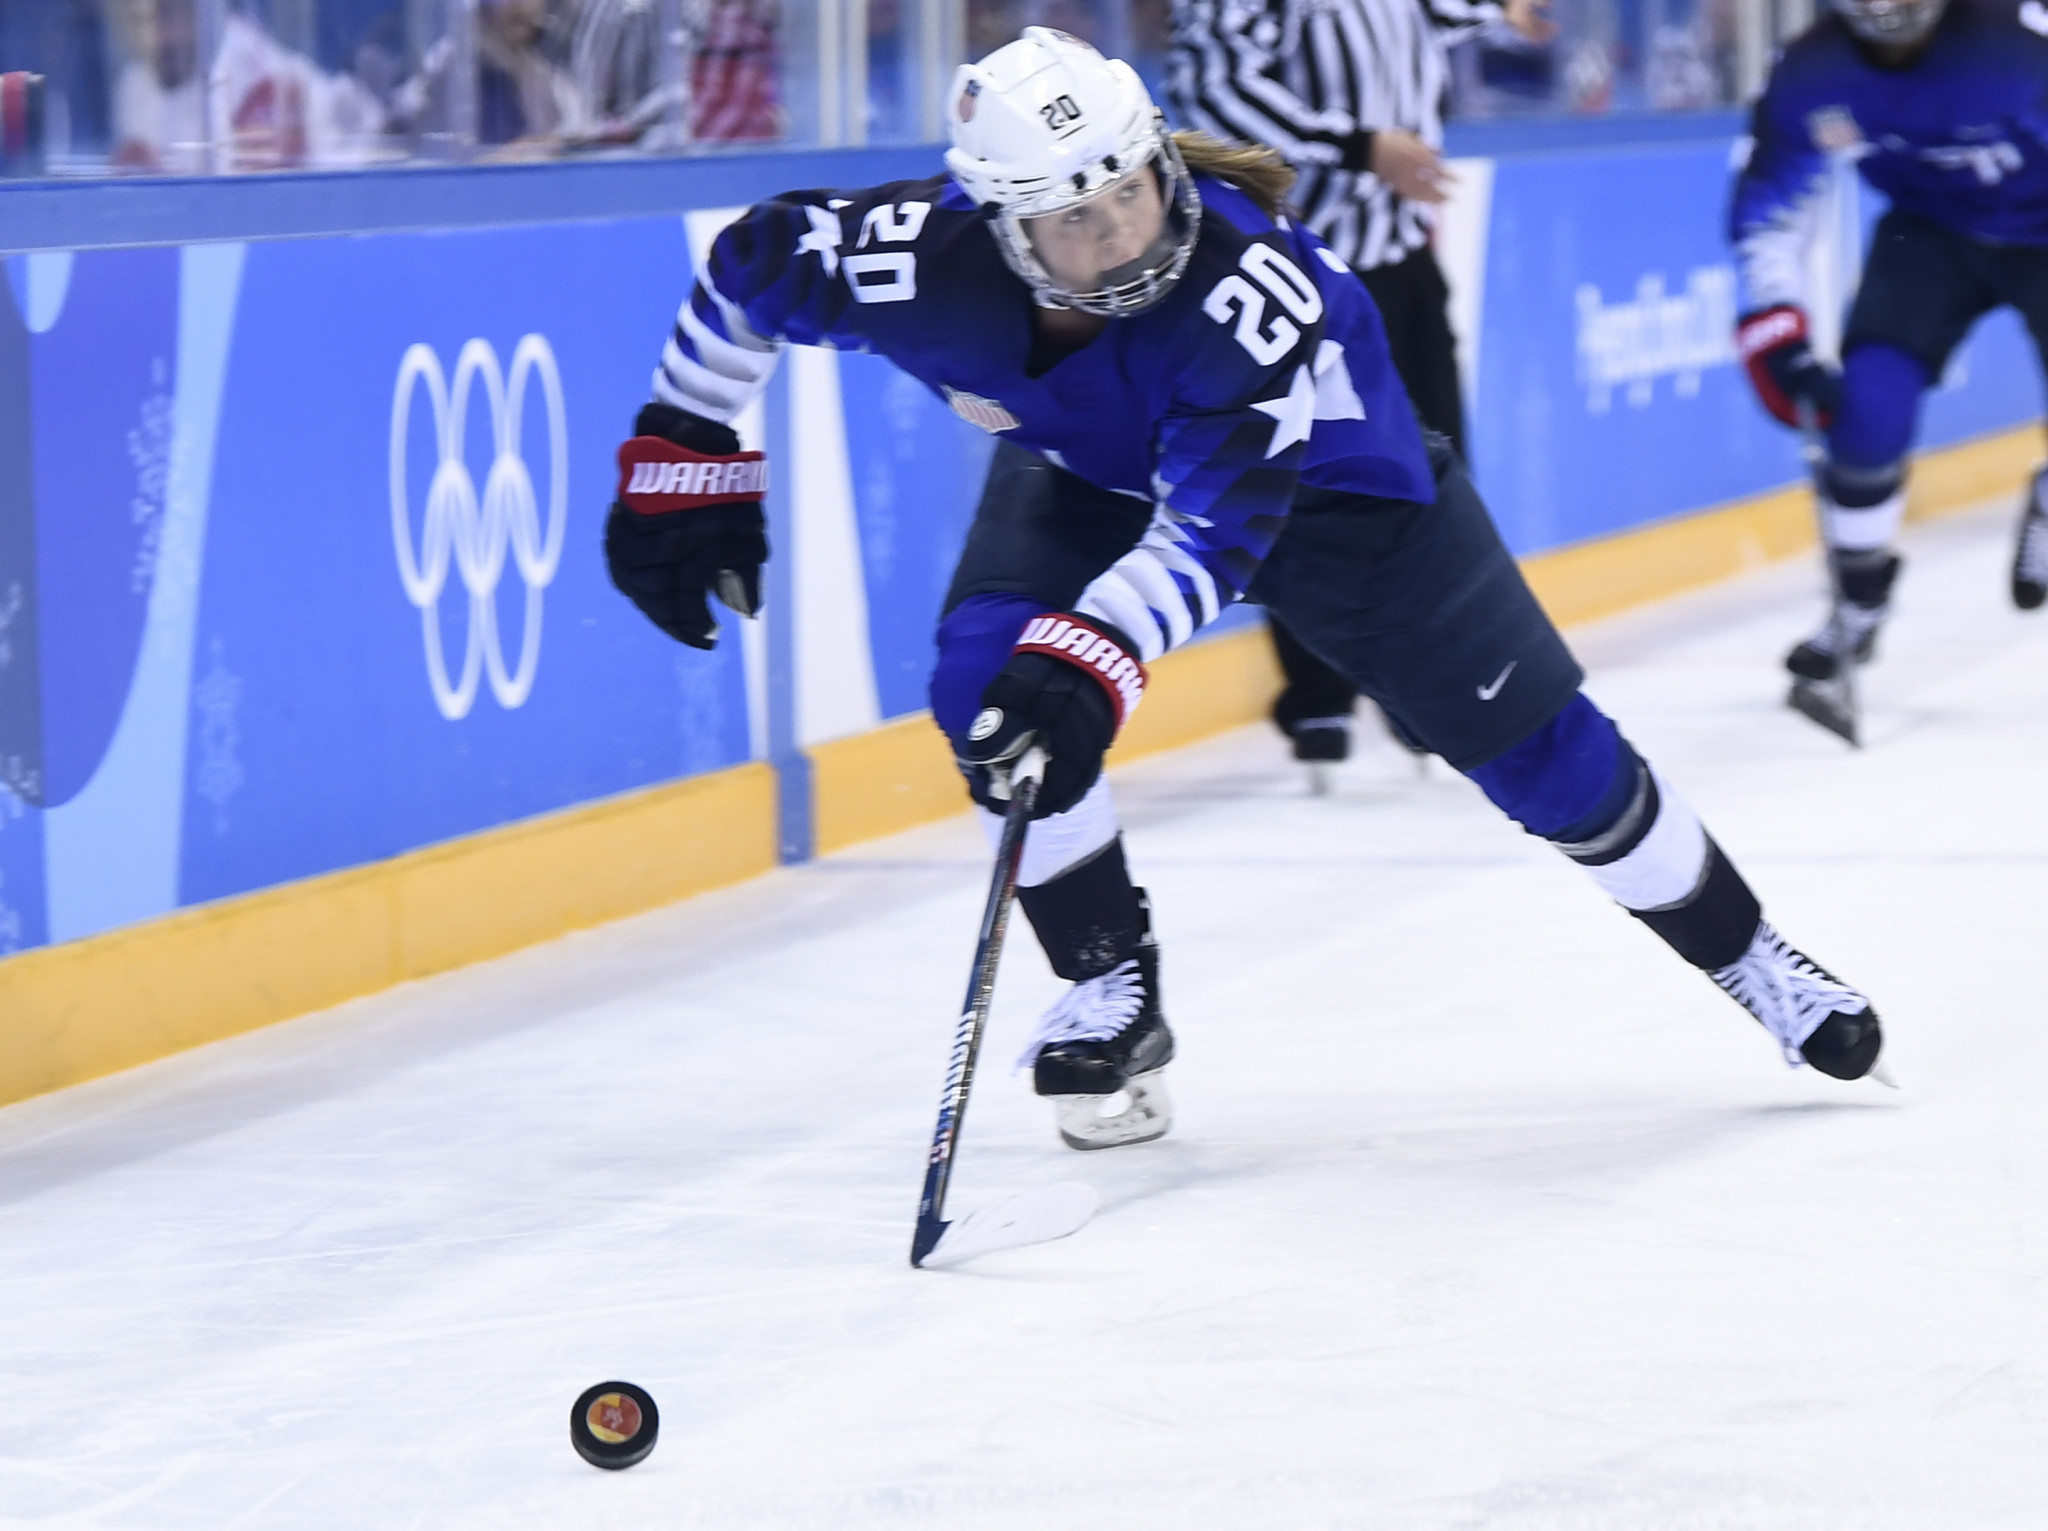 American forward Hannah Brandt has admitted the United States have a target on their backs at the tournament in Finland ©Getty Images